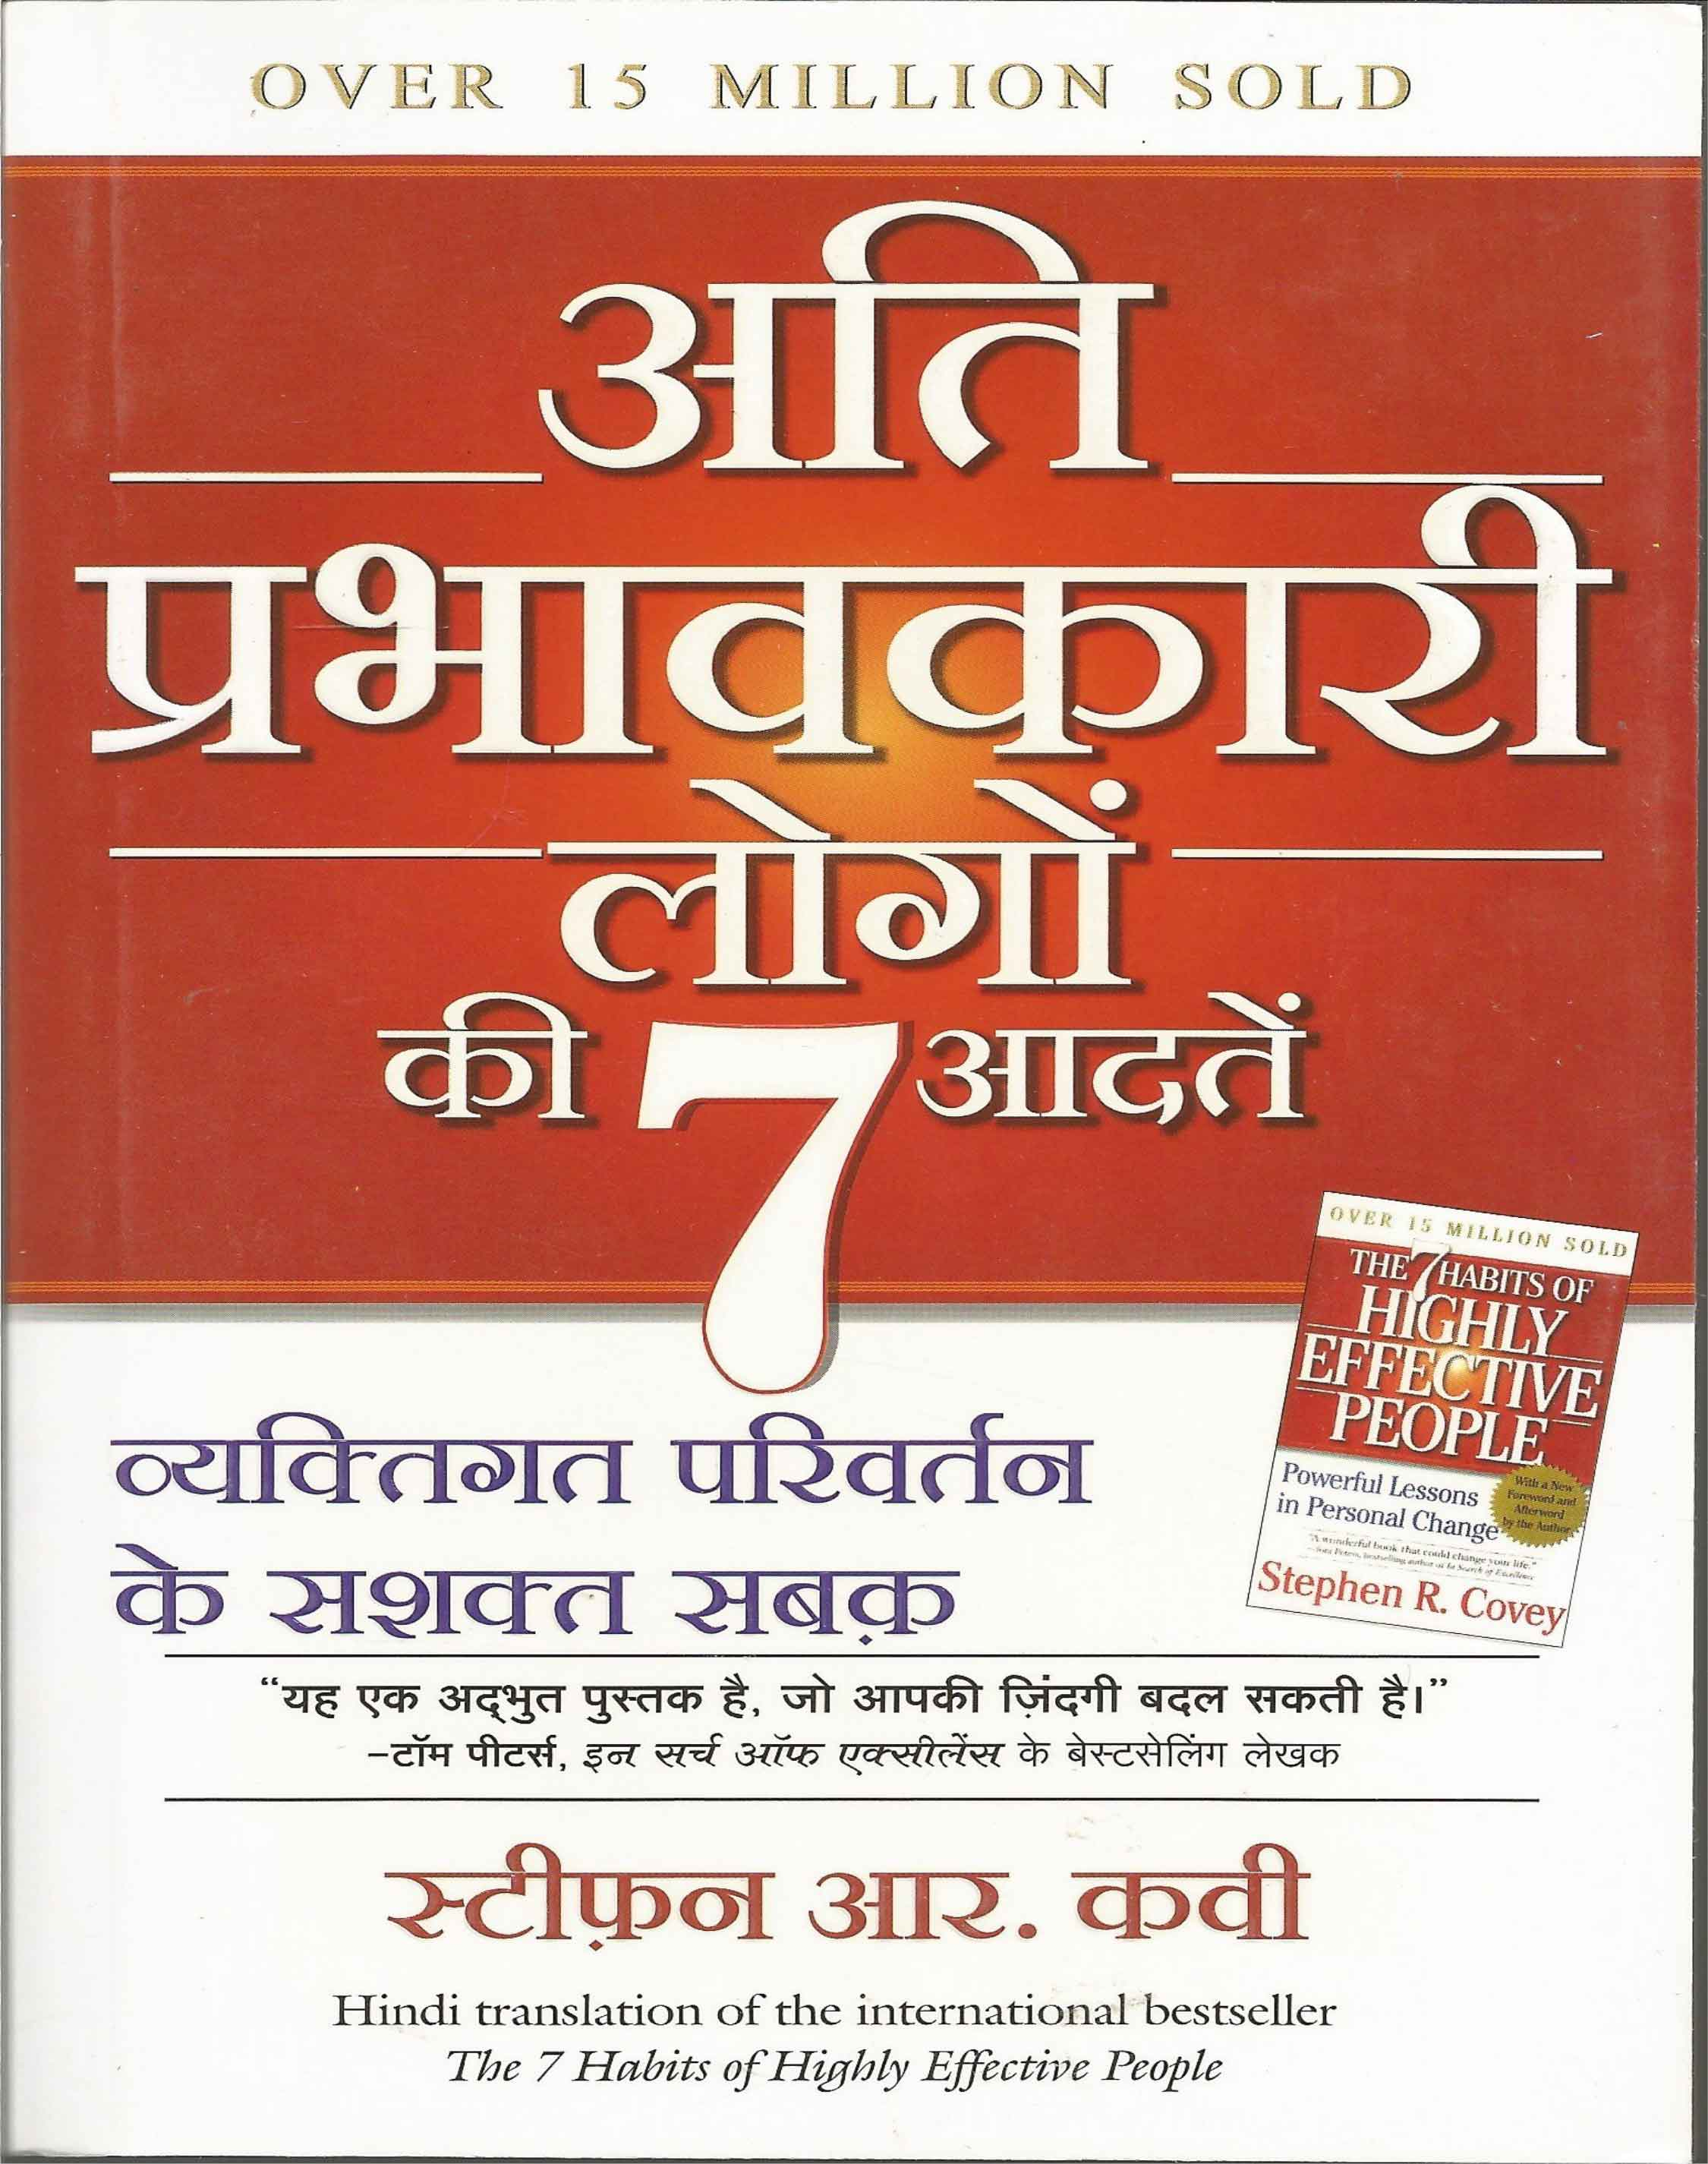 Book 8 - The 7 Habits of Highly Effective People